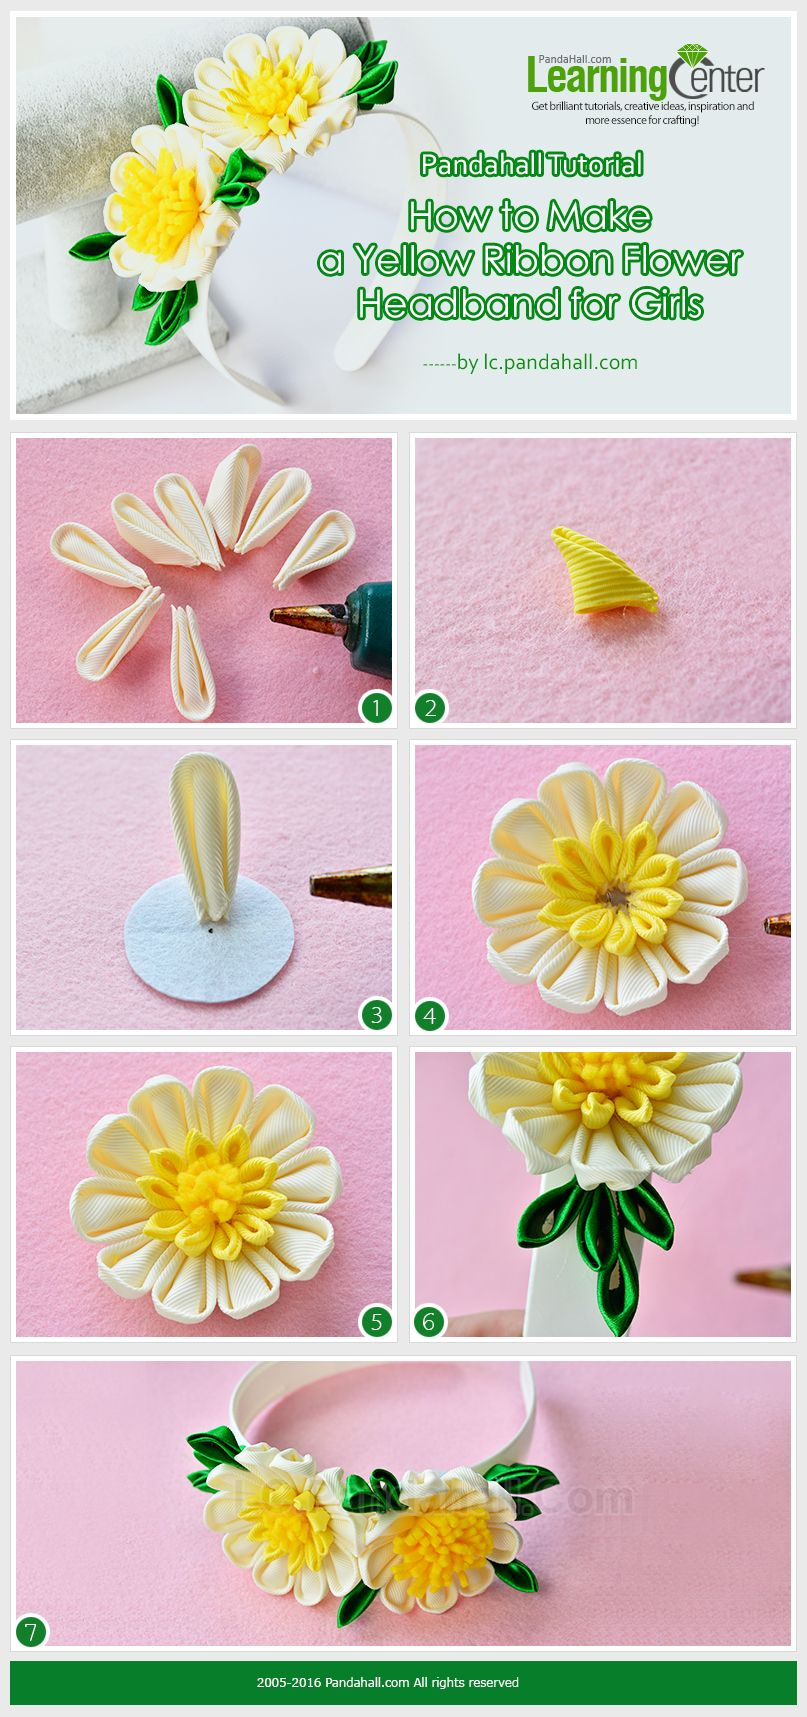 Tutorial on how to make a yellow ribbon flower headband for girls pandahall tutorial how to make a yellow ribbon flower headband for girls izmirmasajfo Gallery